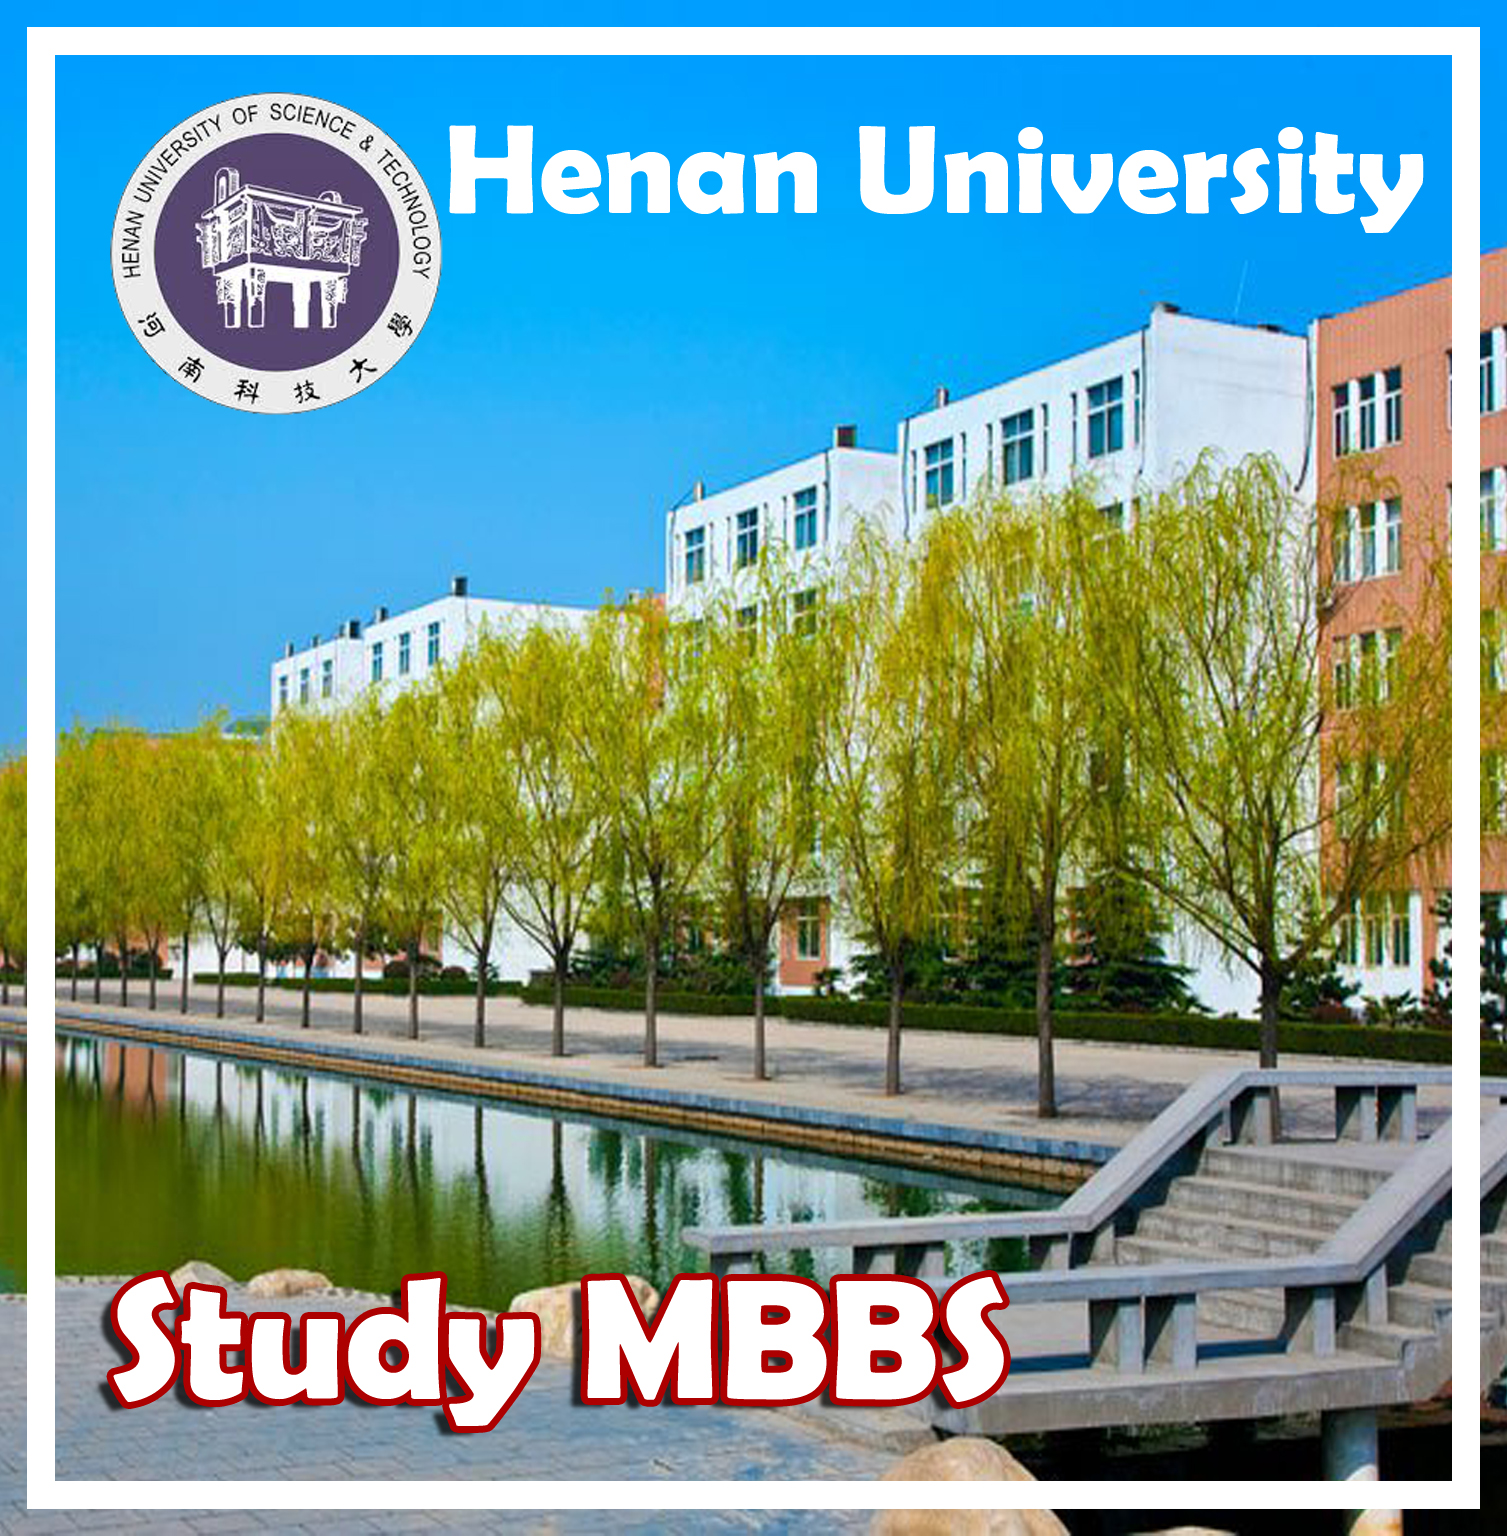 Henan University of Science and Technology - MBBS   Sicpk